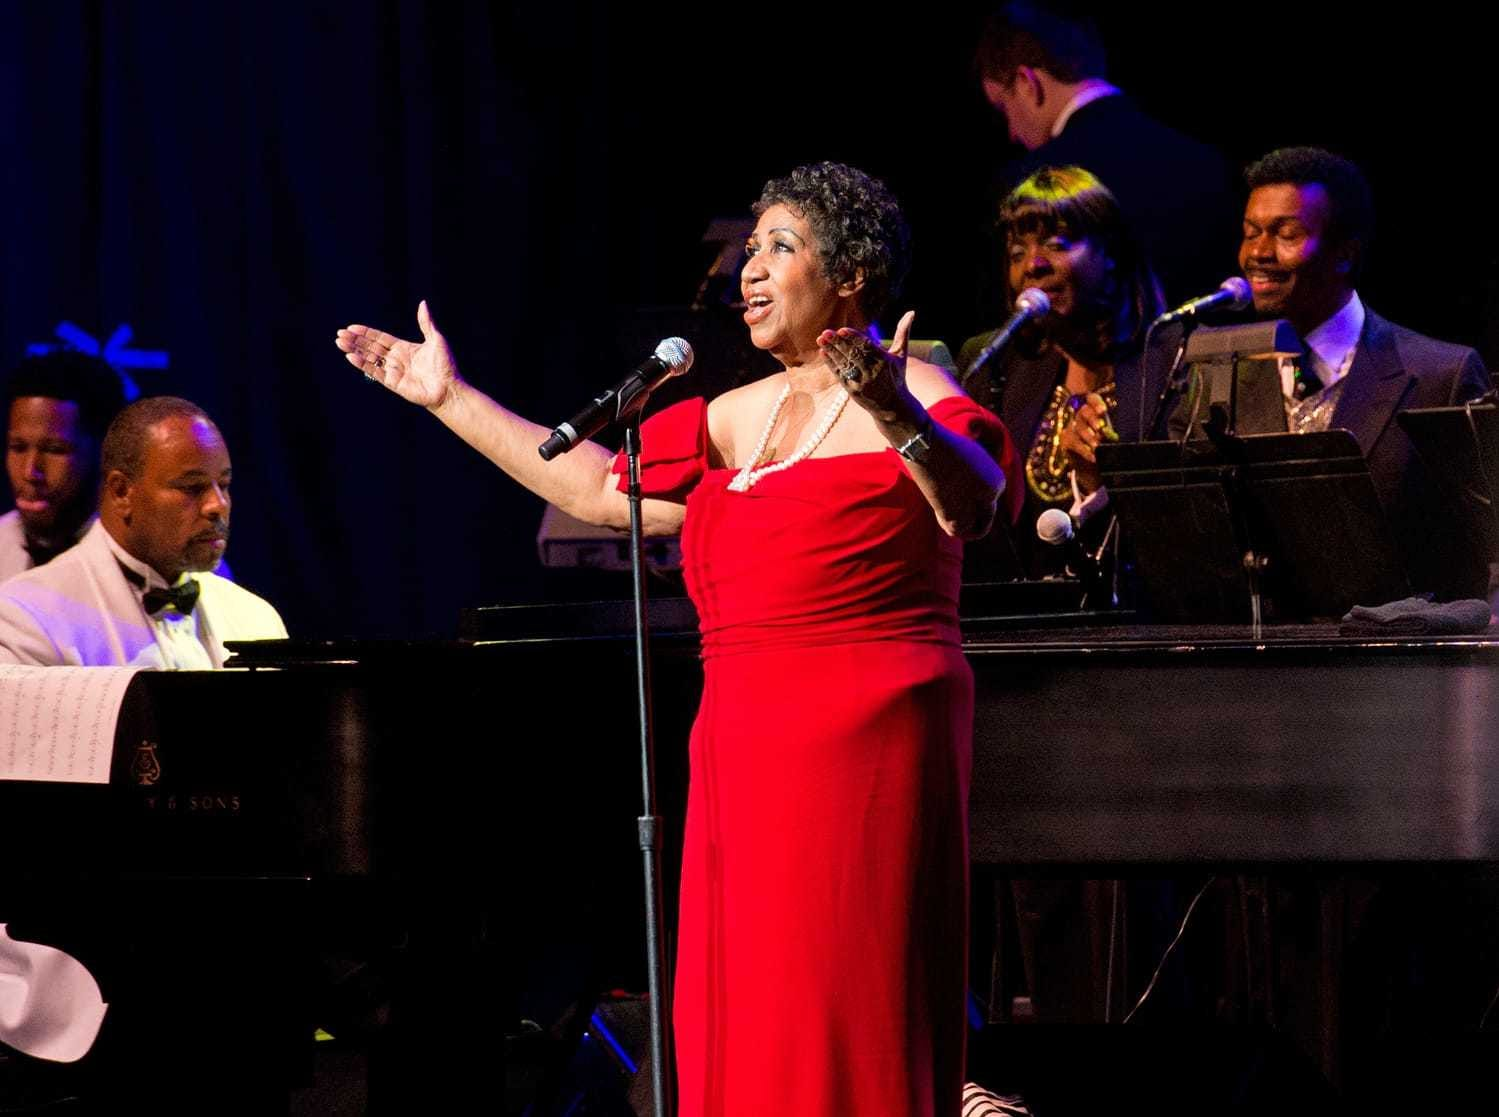 Aretha Franklin was the featured performer at the Bardavon Gala in Poughkeepsie, New York.